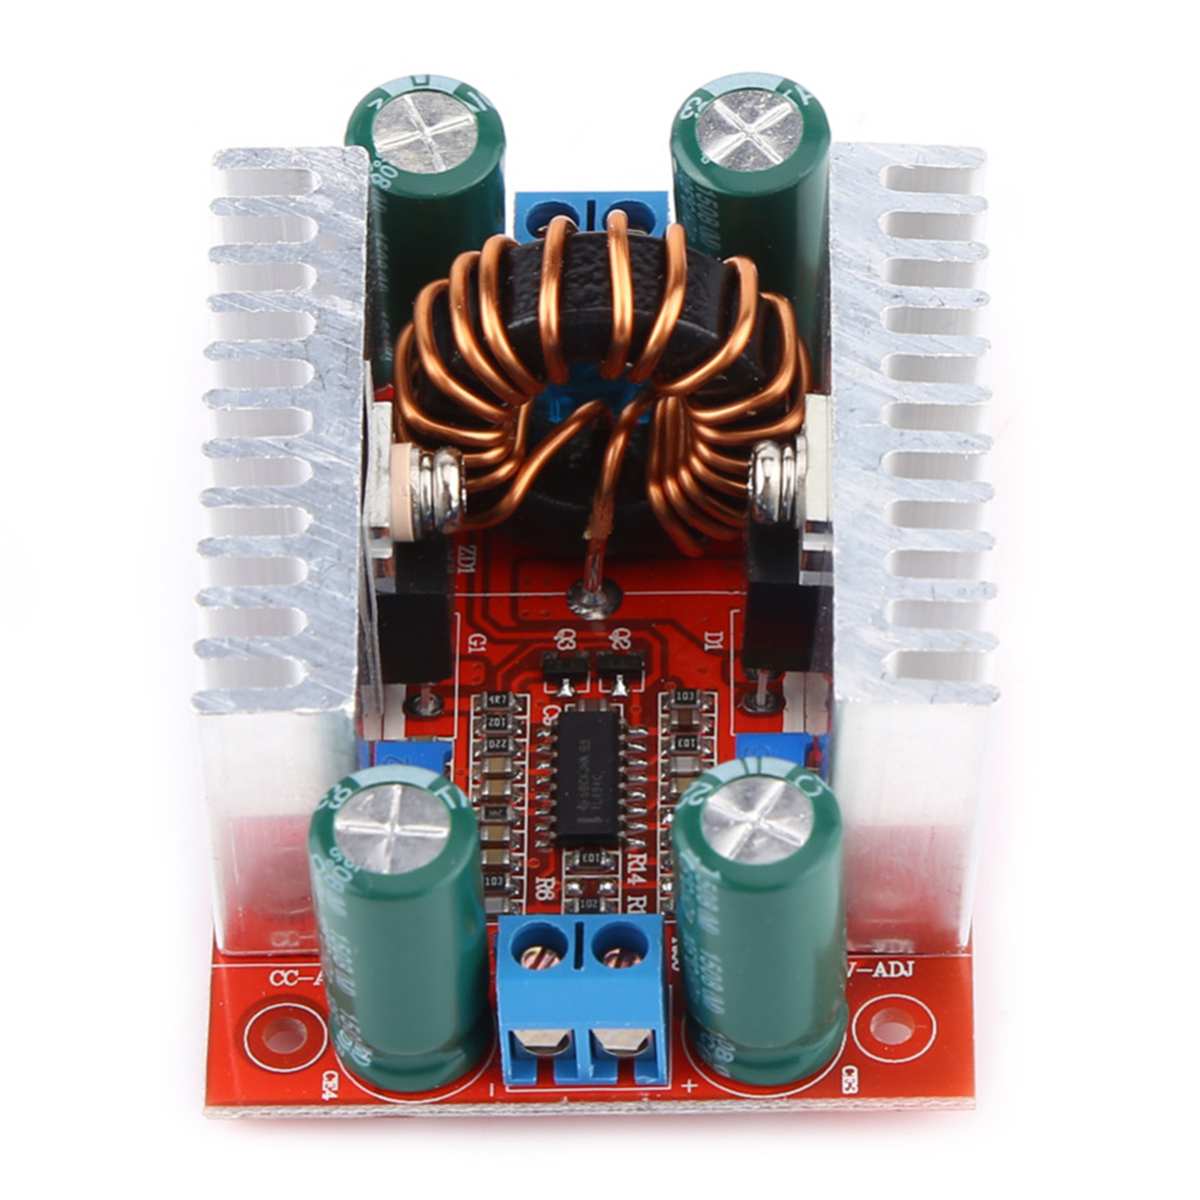 400W DC-DC Step-up Boost Converter Constant Current Power Supply Module LED Driver Step Up Voltage Module 67 x 48 x 28mm